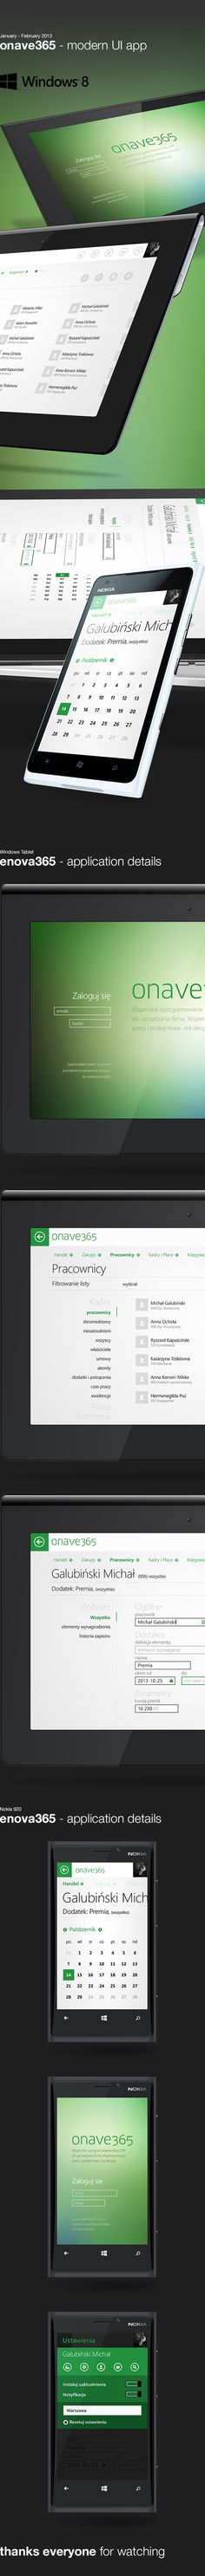 onave365 - Windows 8 app by Michal Galubinski, via Behance